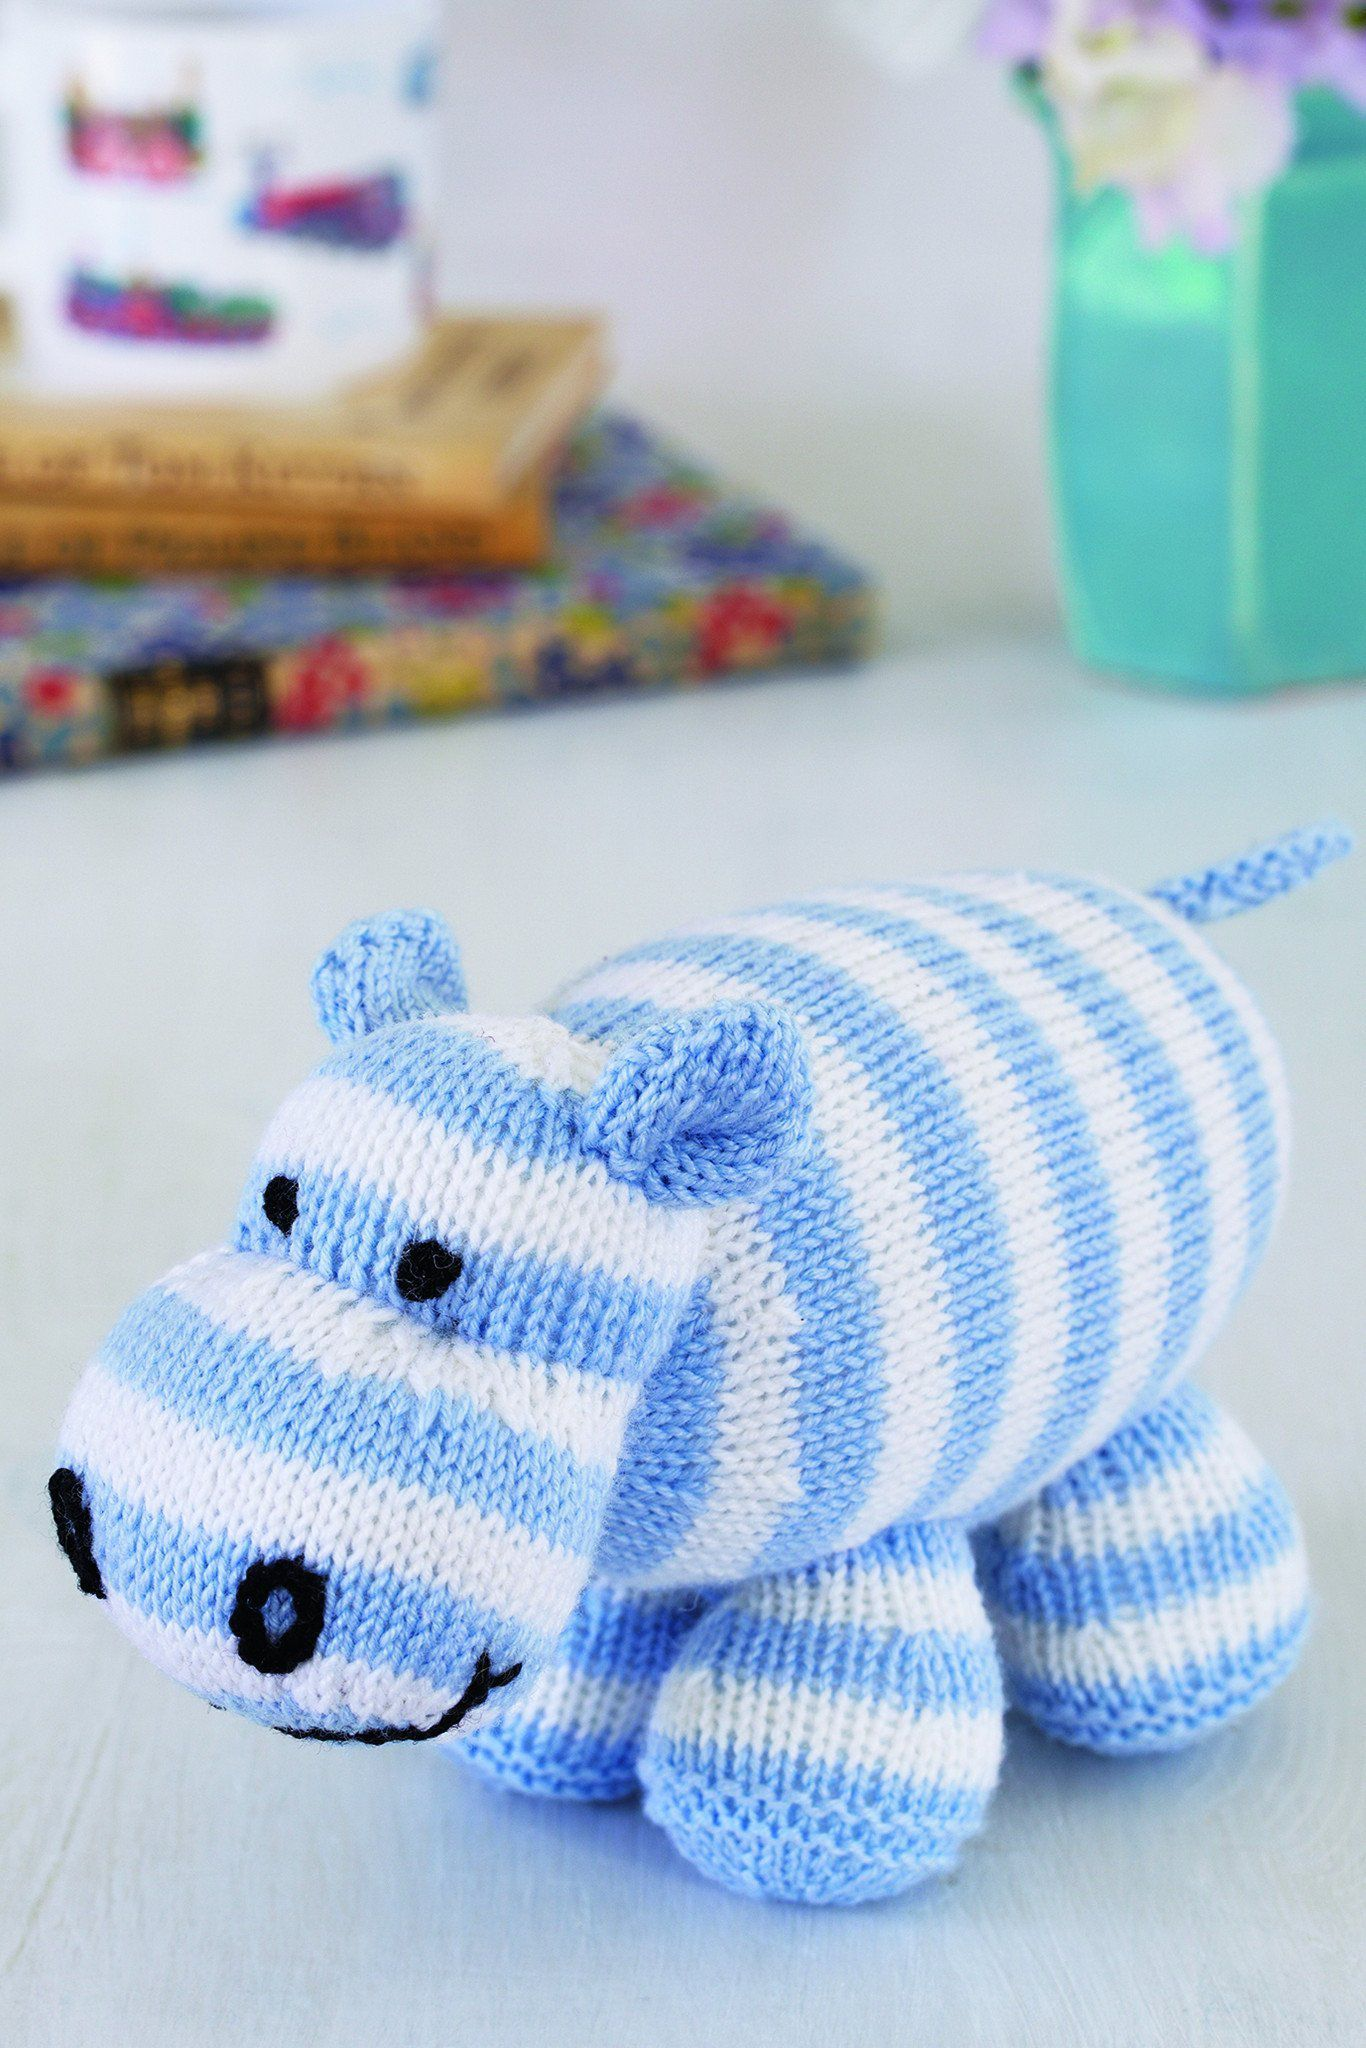 Hippo Toy Knitting Pattern – The Knitting Network